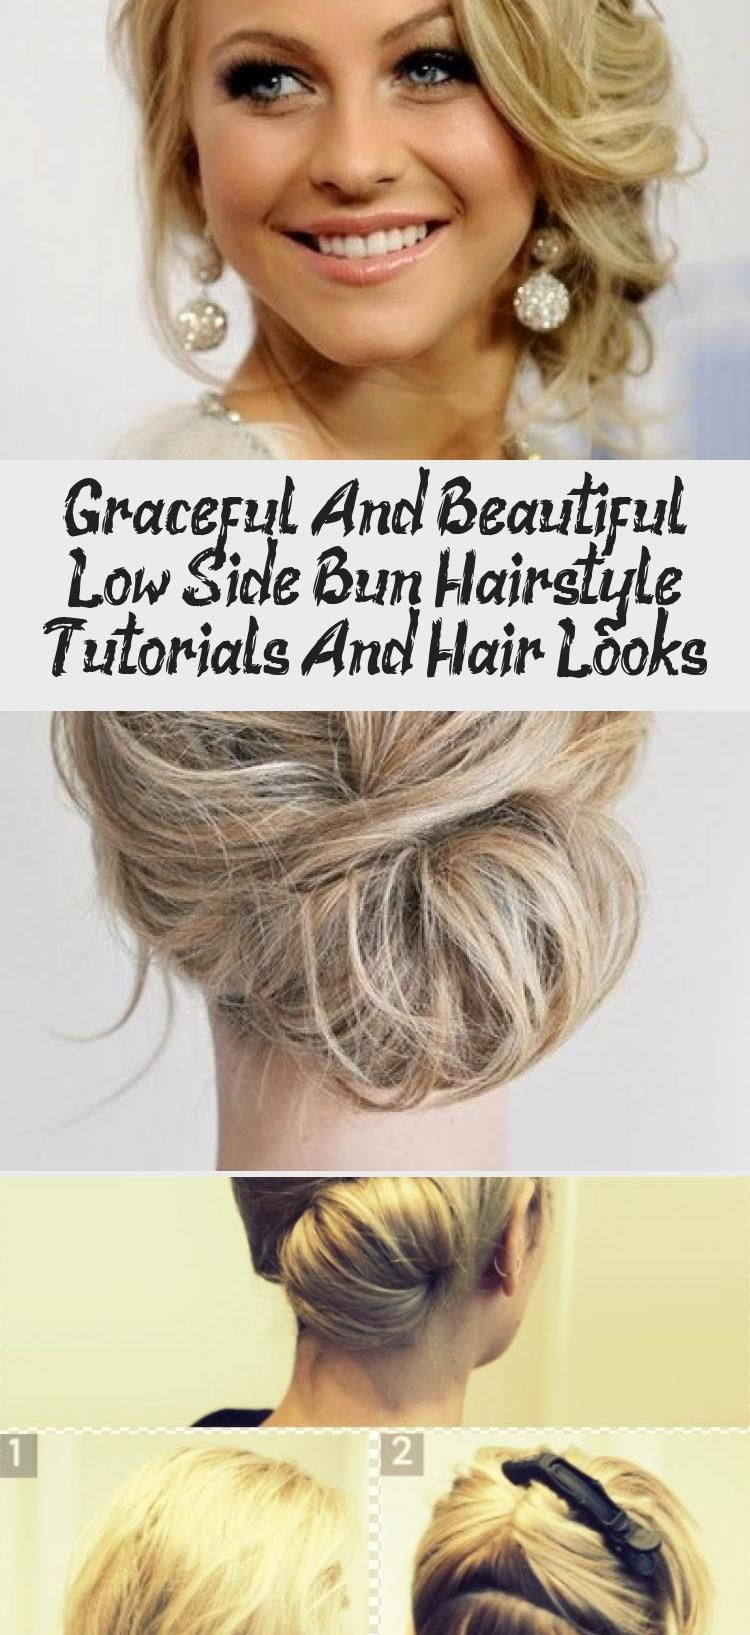 Graceful And Beautiful Low Side Bun Hairstyle Tutorials And Hair Looks #lowsidebuns Graceful Lower Side Bun Hairstyle for Women                                                                                                                                                                                 More #weddinghairsimple #bridesmaidhairVideos #bridesmaidhairAfricanAmerican #bridesmaidhair2018 #bridesmaidhairMediumLength #bridesmaidhairTutorial #lowsidebuns